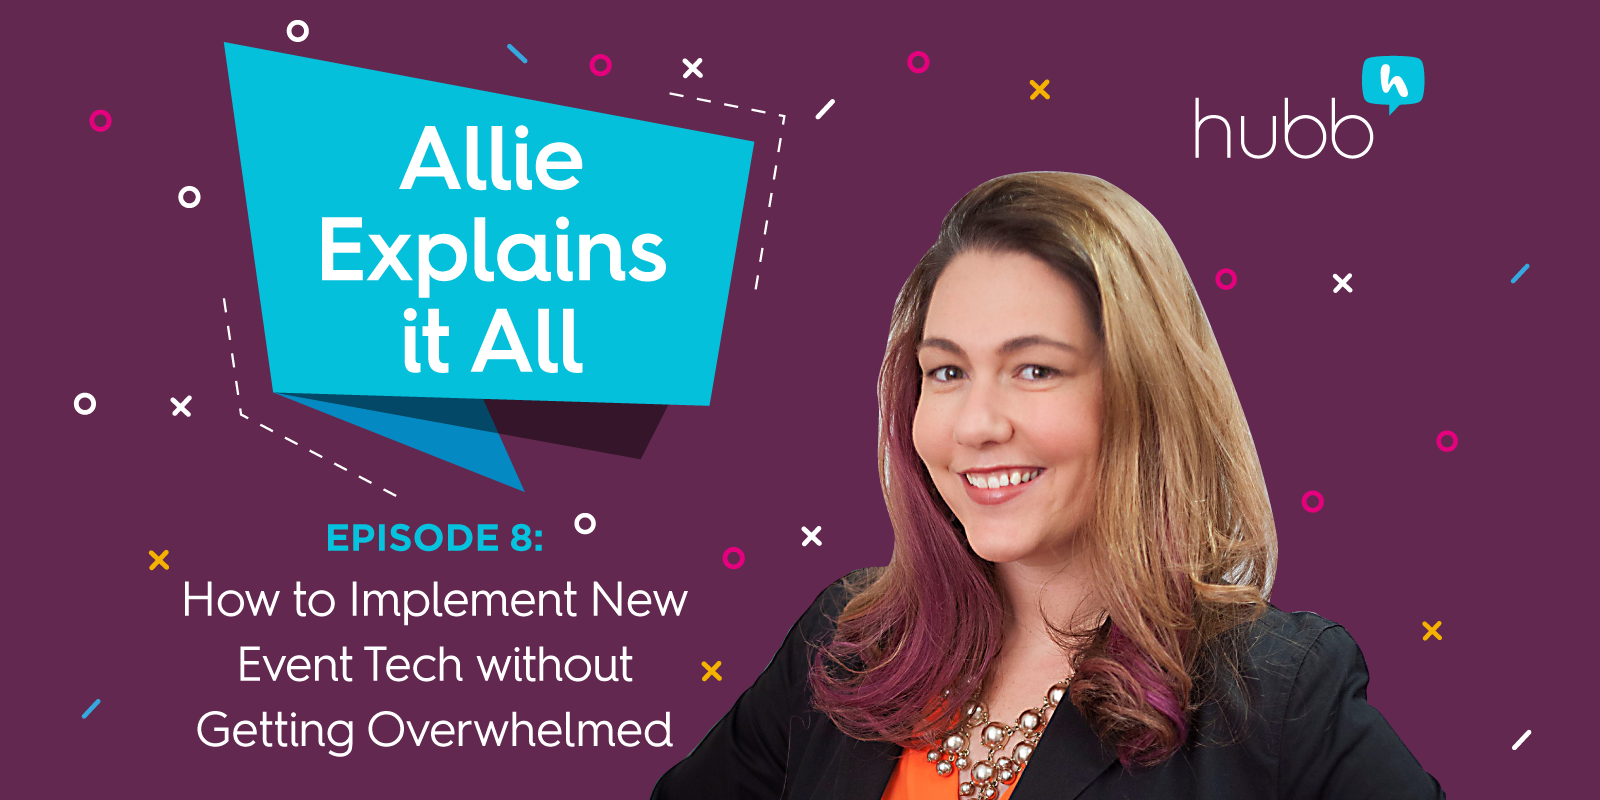 Allie Explains It All, Episode 8: How to Implement New Event Tech without Getting Overwhelmed